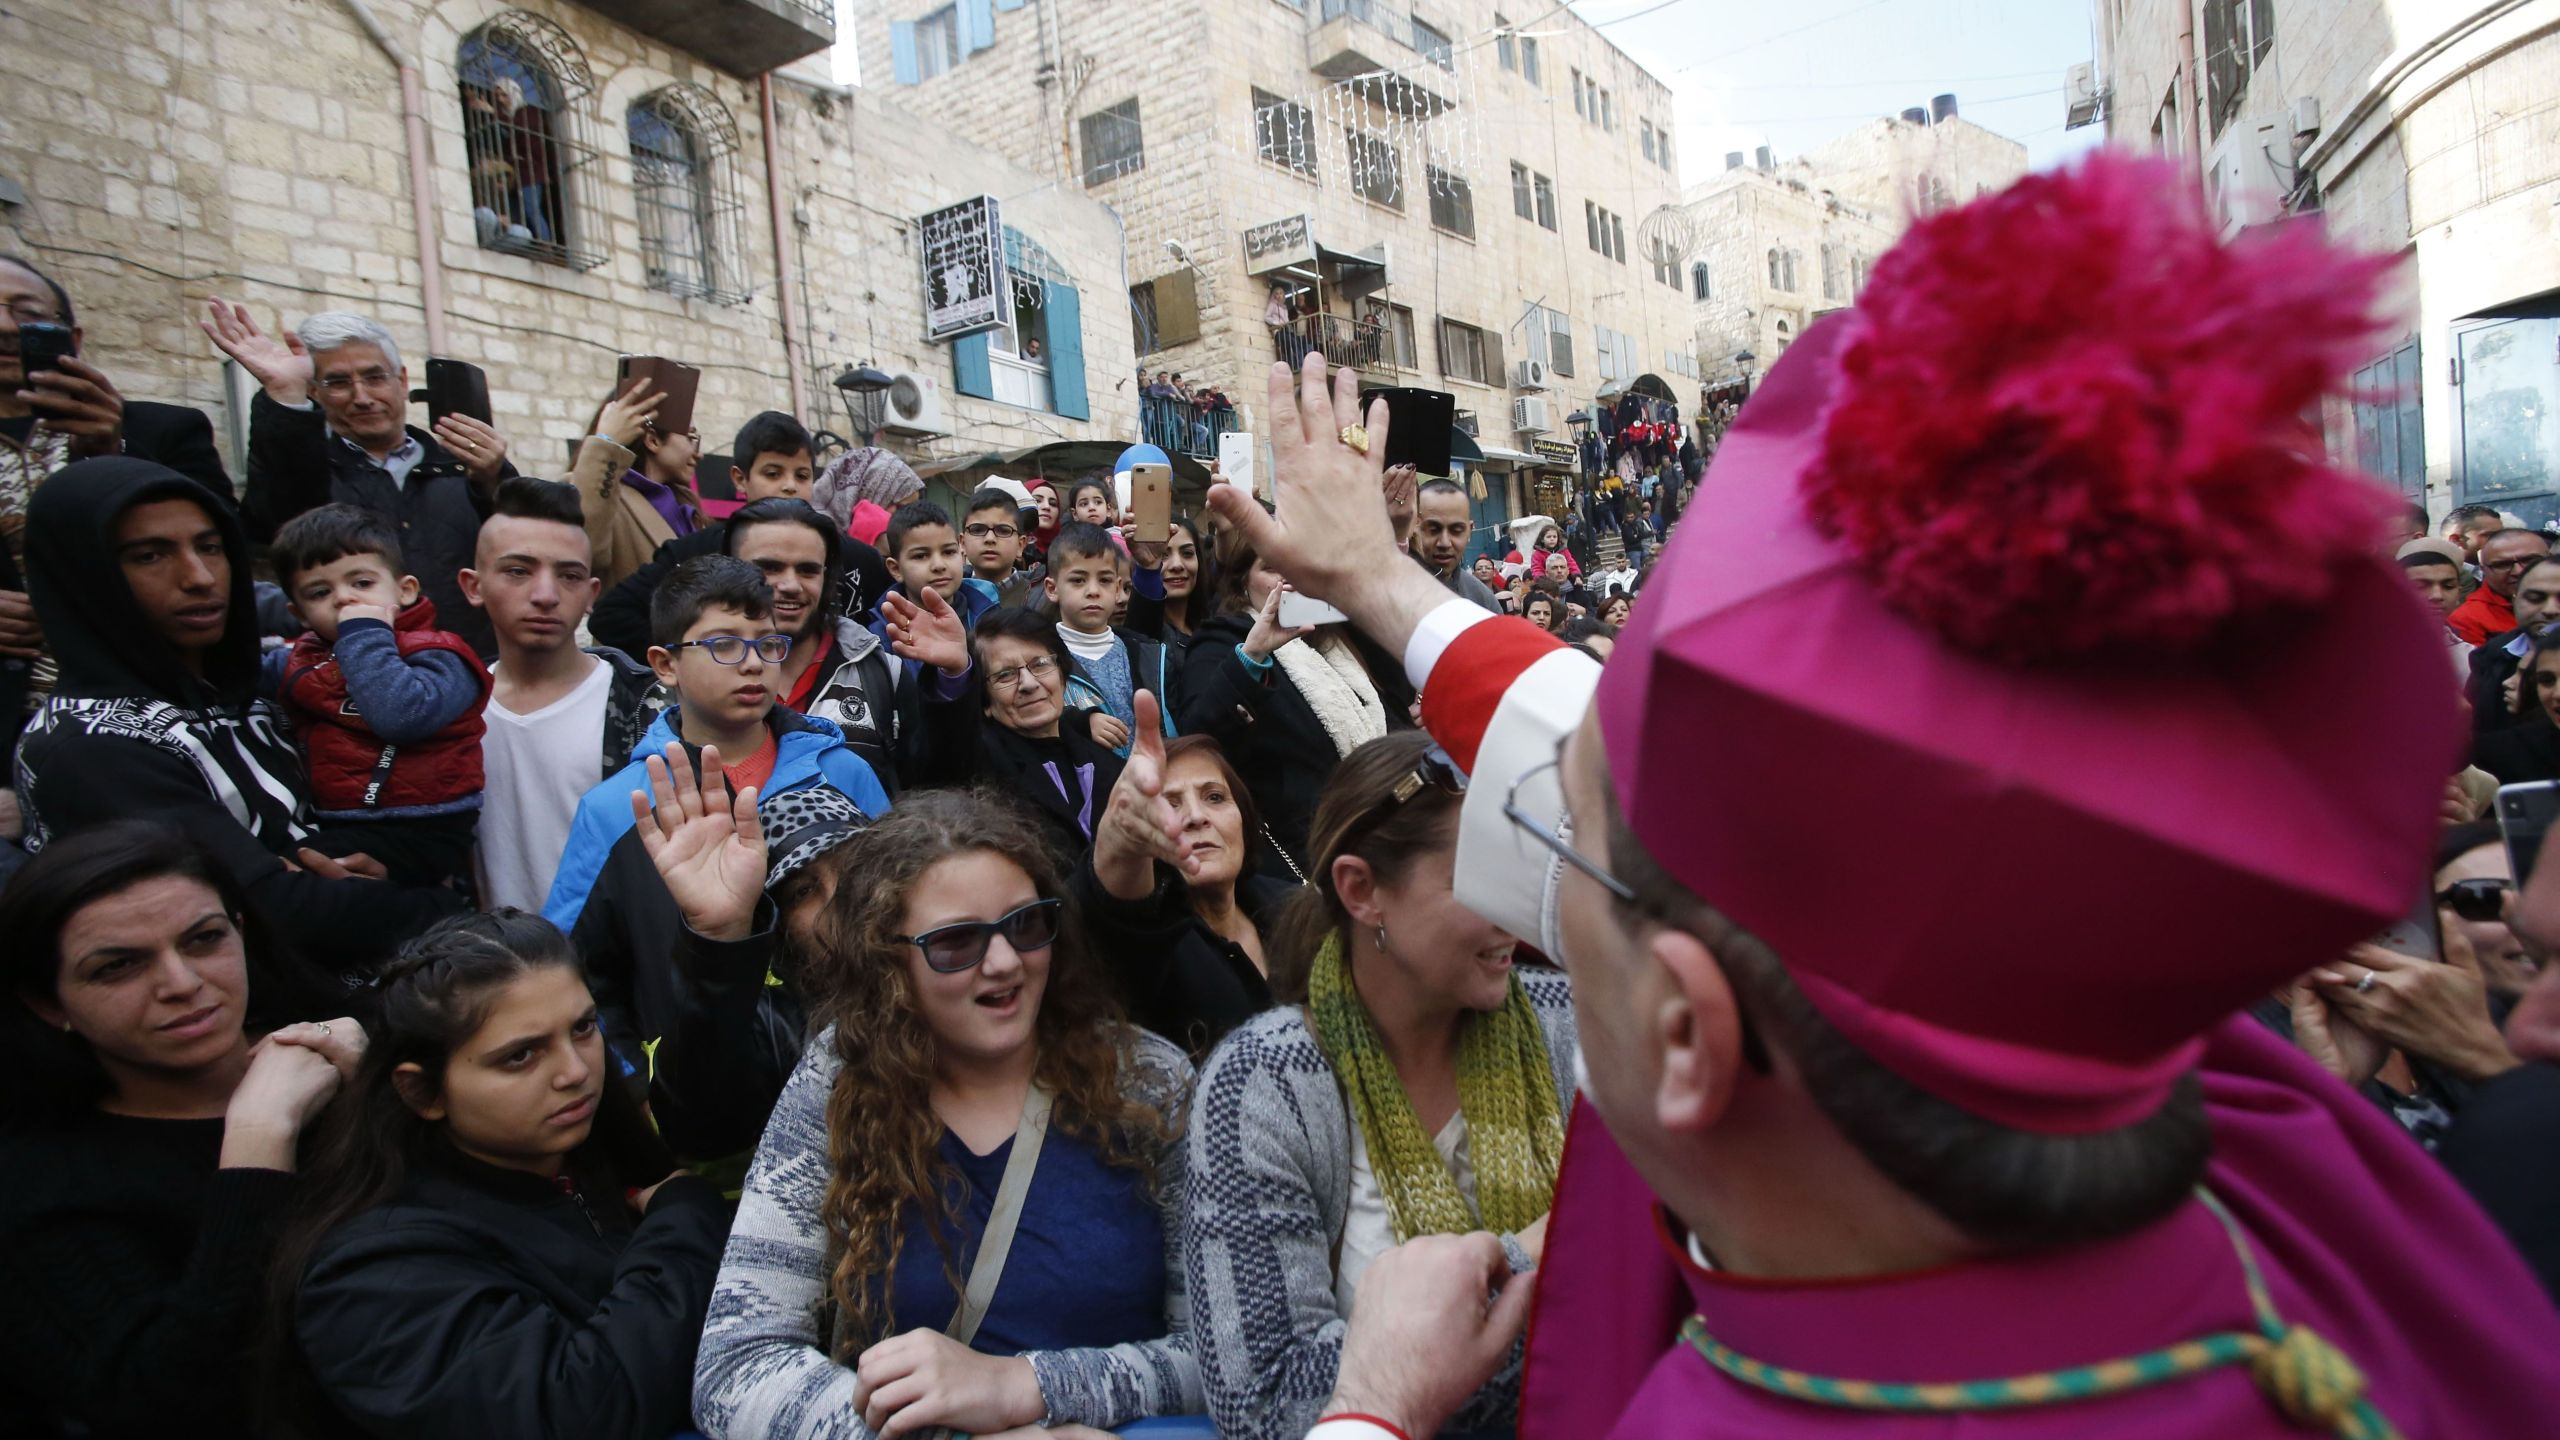 Latin Patriarch of Jerusalem Pierbattista Pizzaballa greets a crowd as he arrives in the West Bank city of Bethlehem, on Dec. 24, 2018. (Credit: HAZEM BADER/AFP/Getty Images)